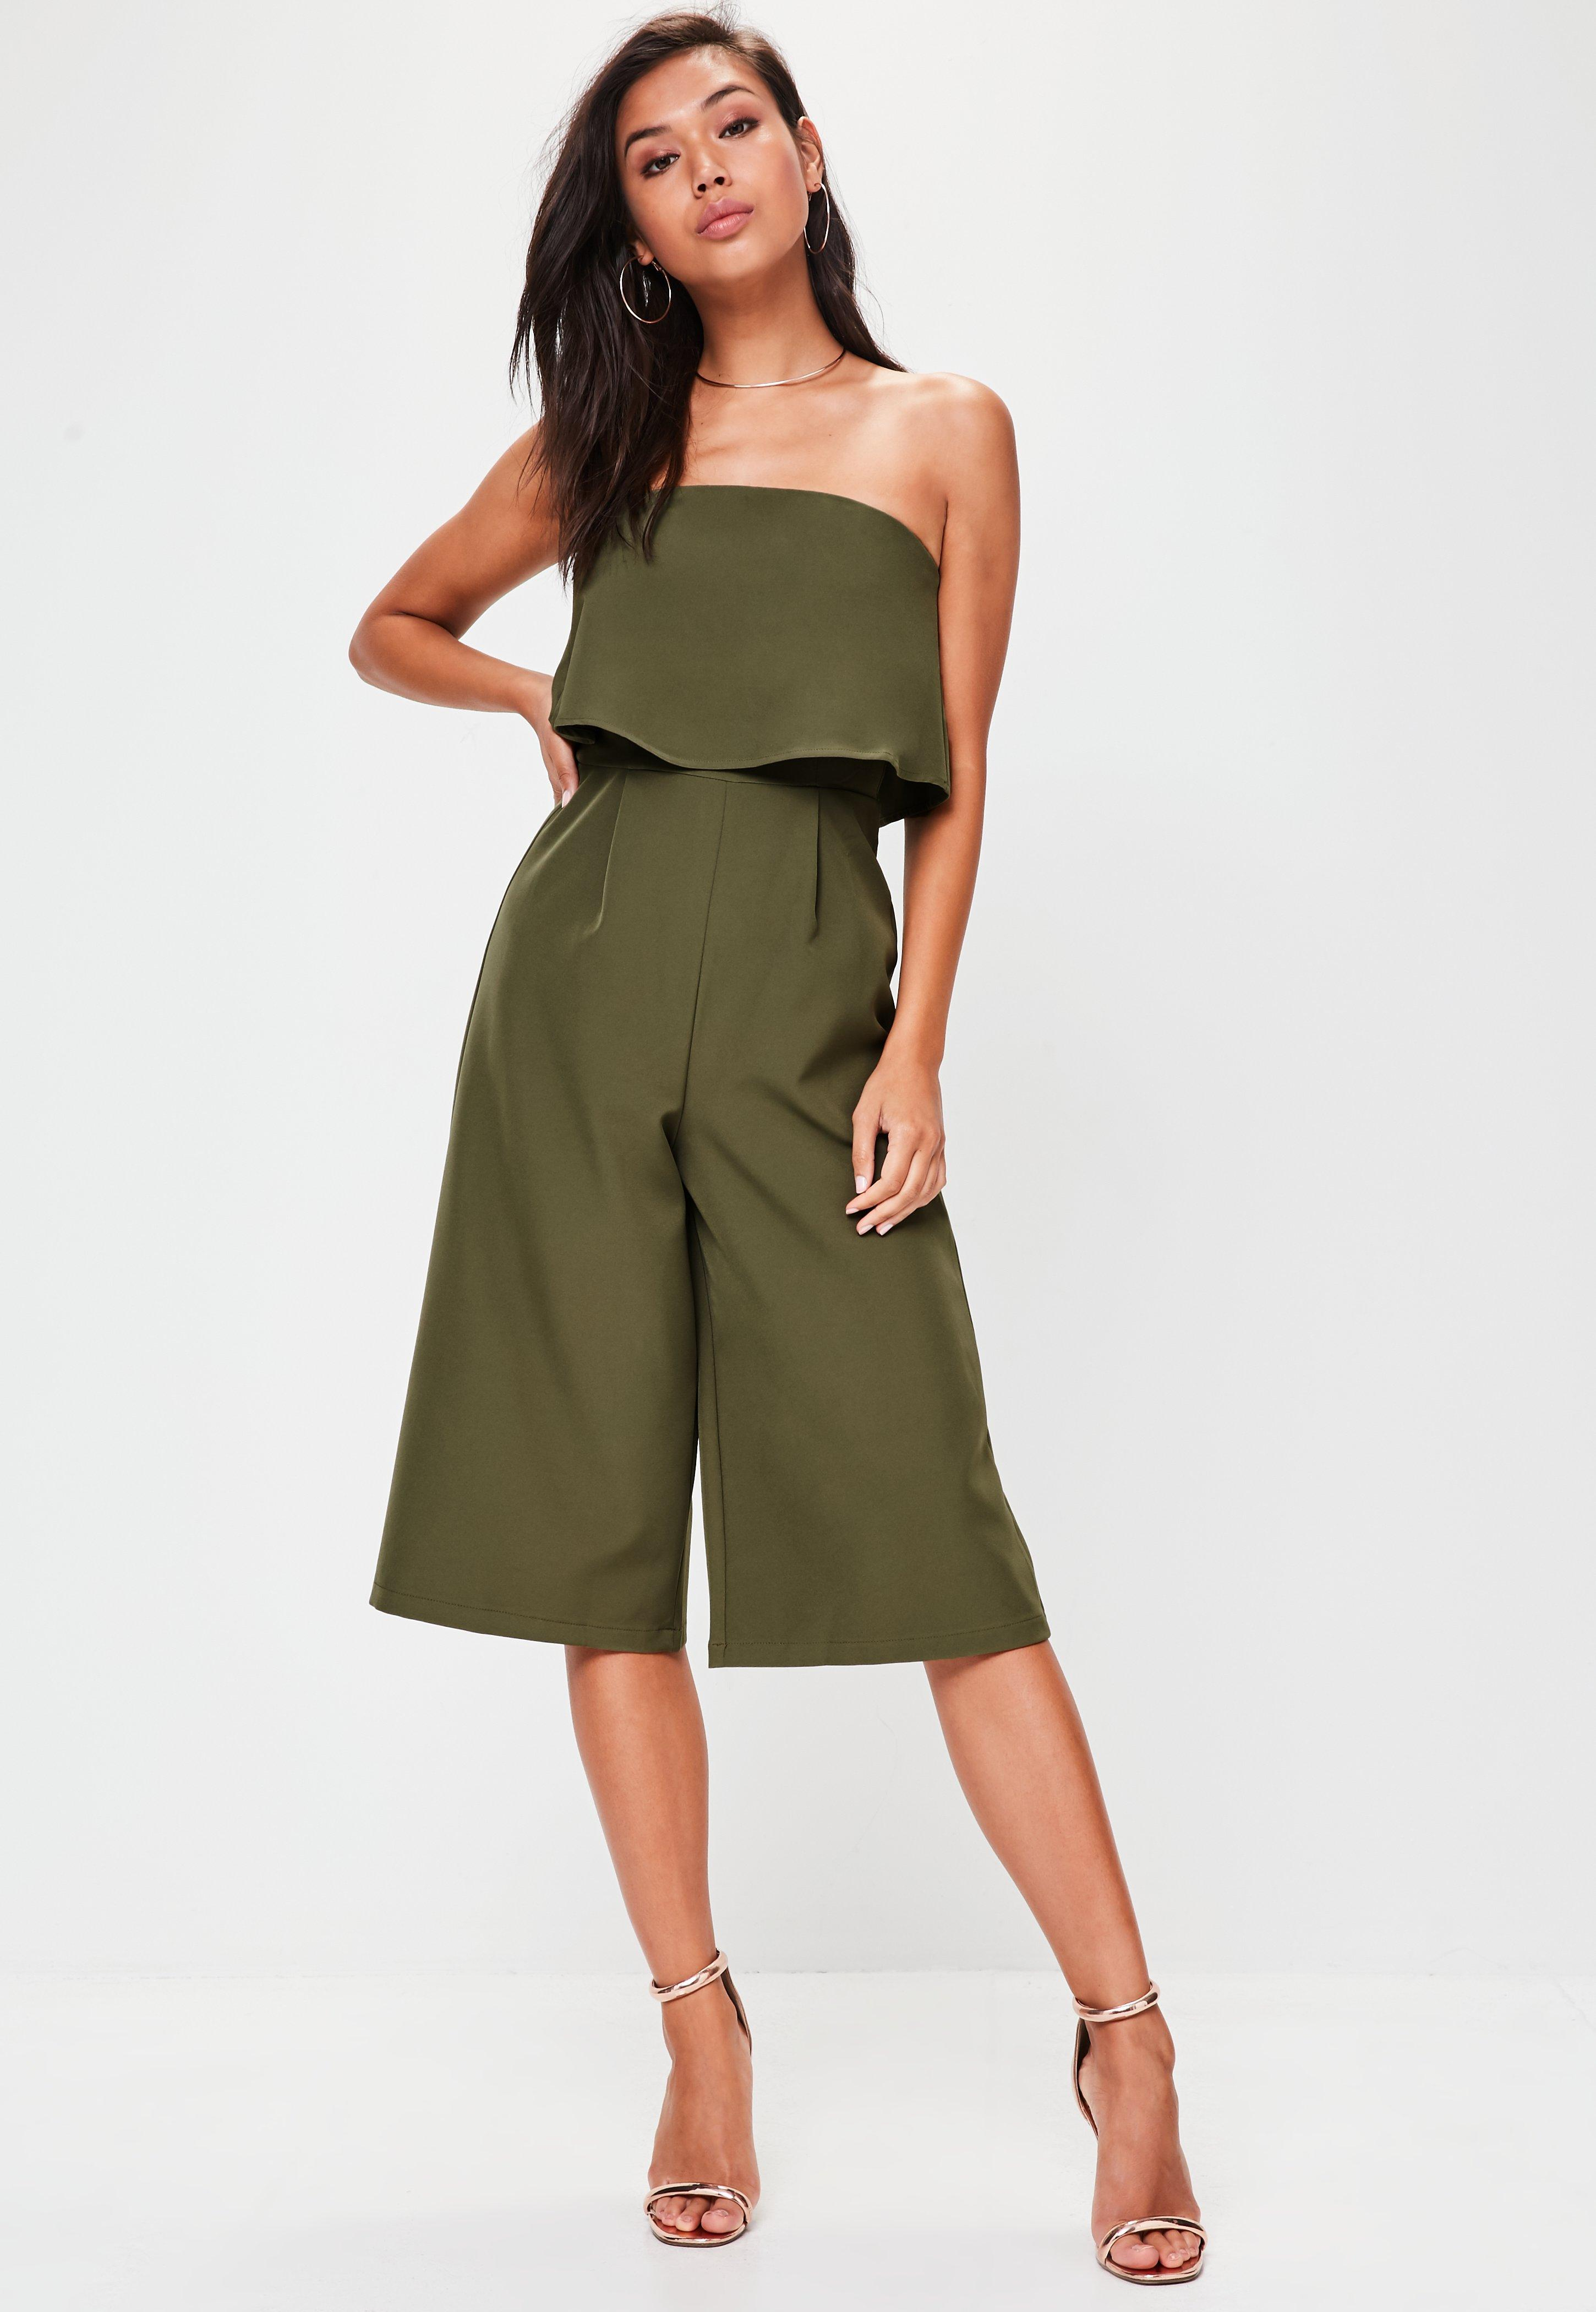 2880495ae07 Missguided - Green Khaki Crepe Double Layer Culotte Jumpsuit - Lyst. View  fullscreen